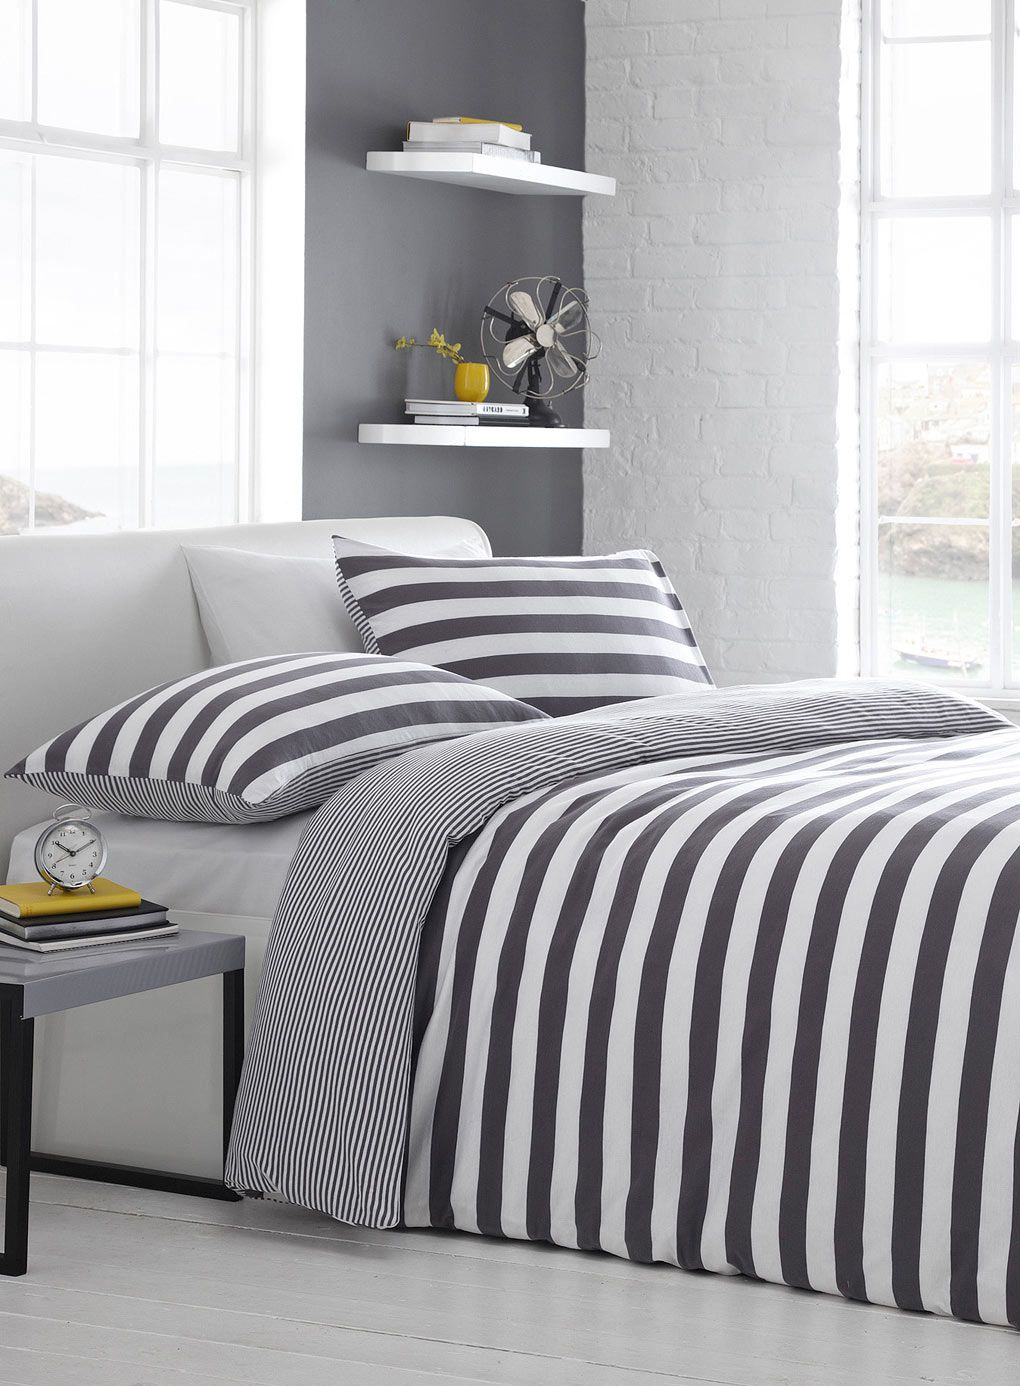 Grey And White Striped Sheets Check more at https://.yesrail